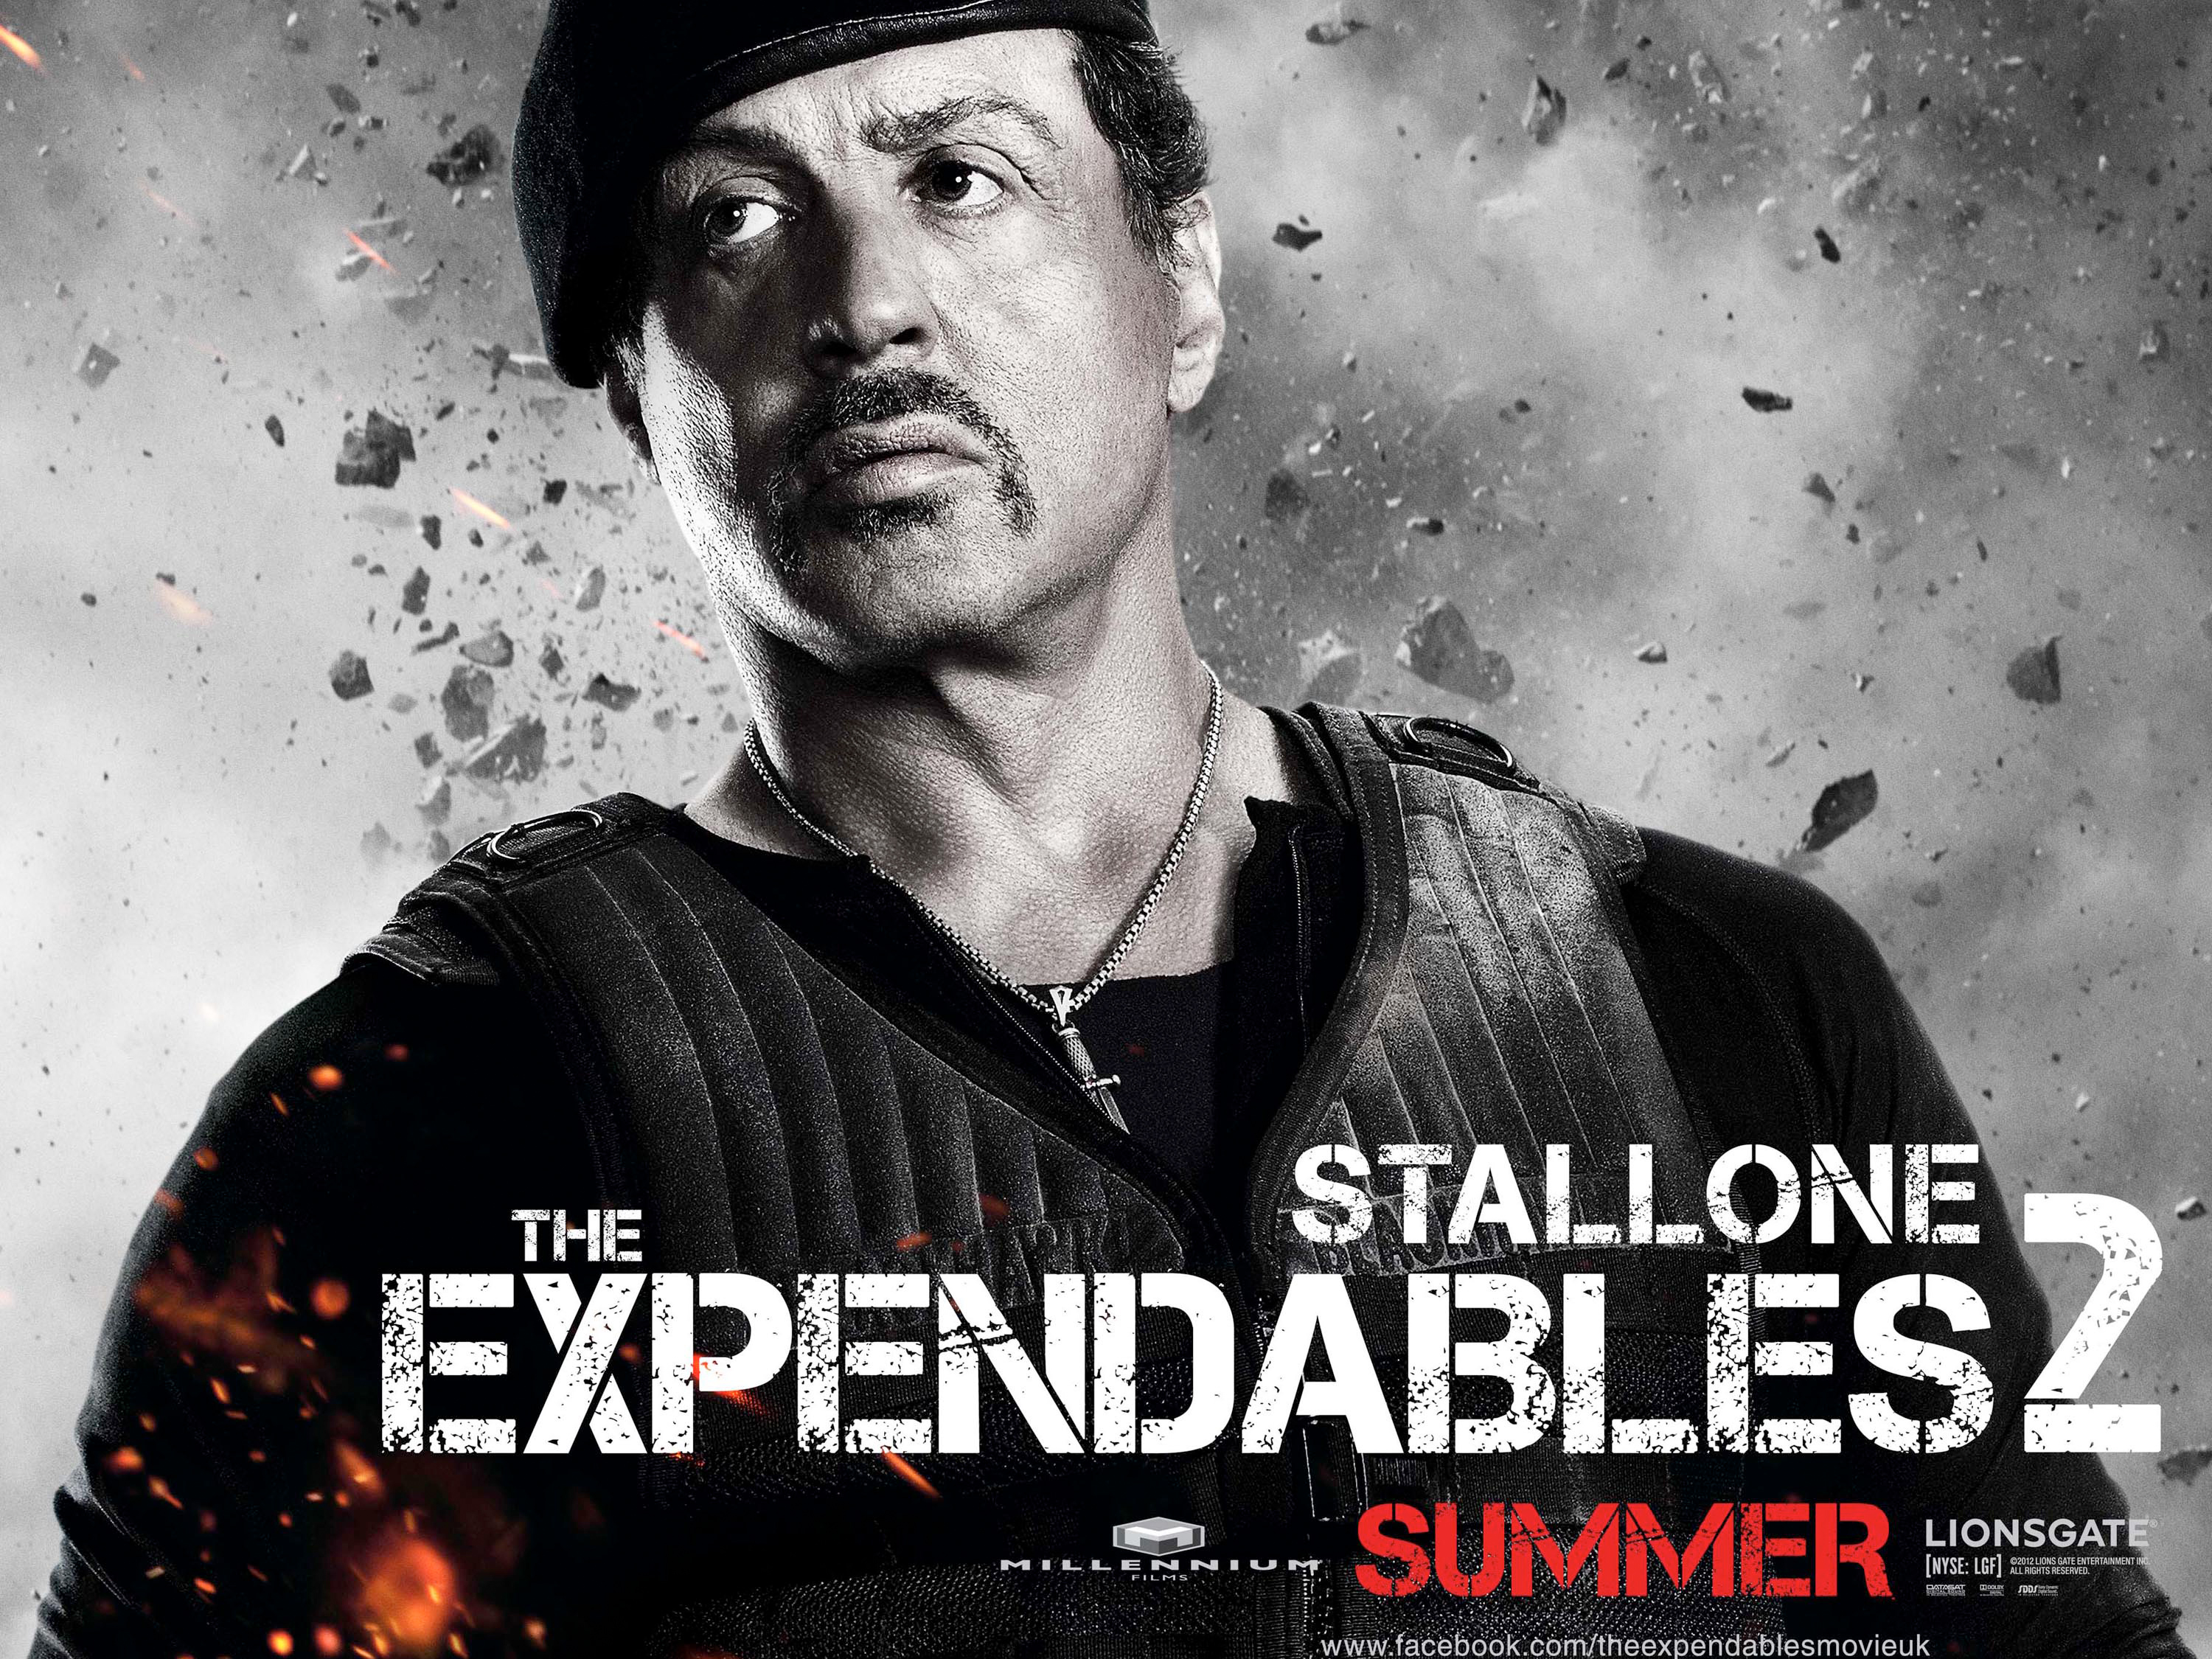 Sylvester Stallone In Expendables - Wallpaper, High ...